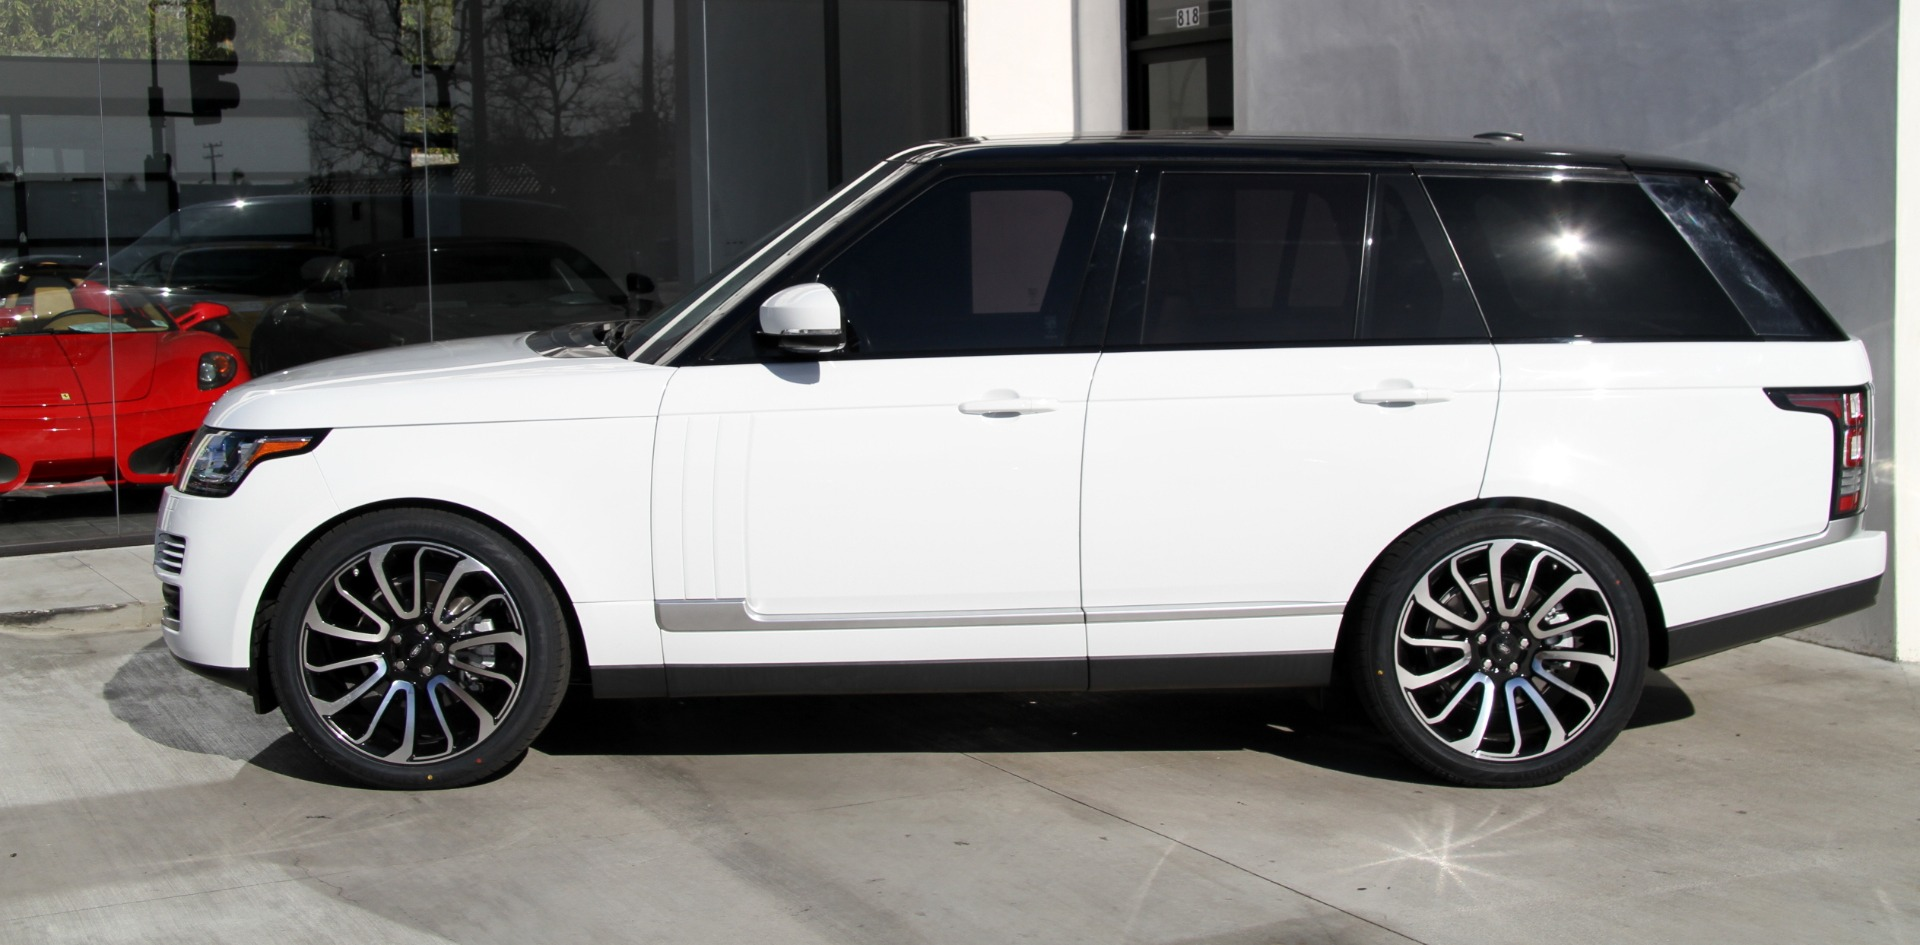 Used Range Rover For Sale Near Me >> 2014 Land Rover Range Rover HSE Stock # 6041 for sale near Redondo Beach, CA | CA Land Rover Dealer